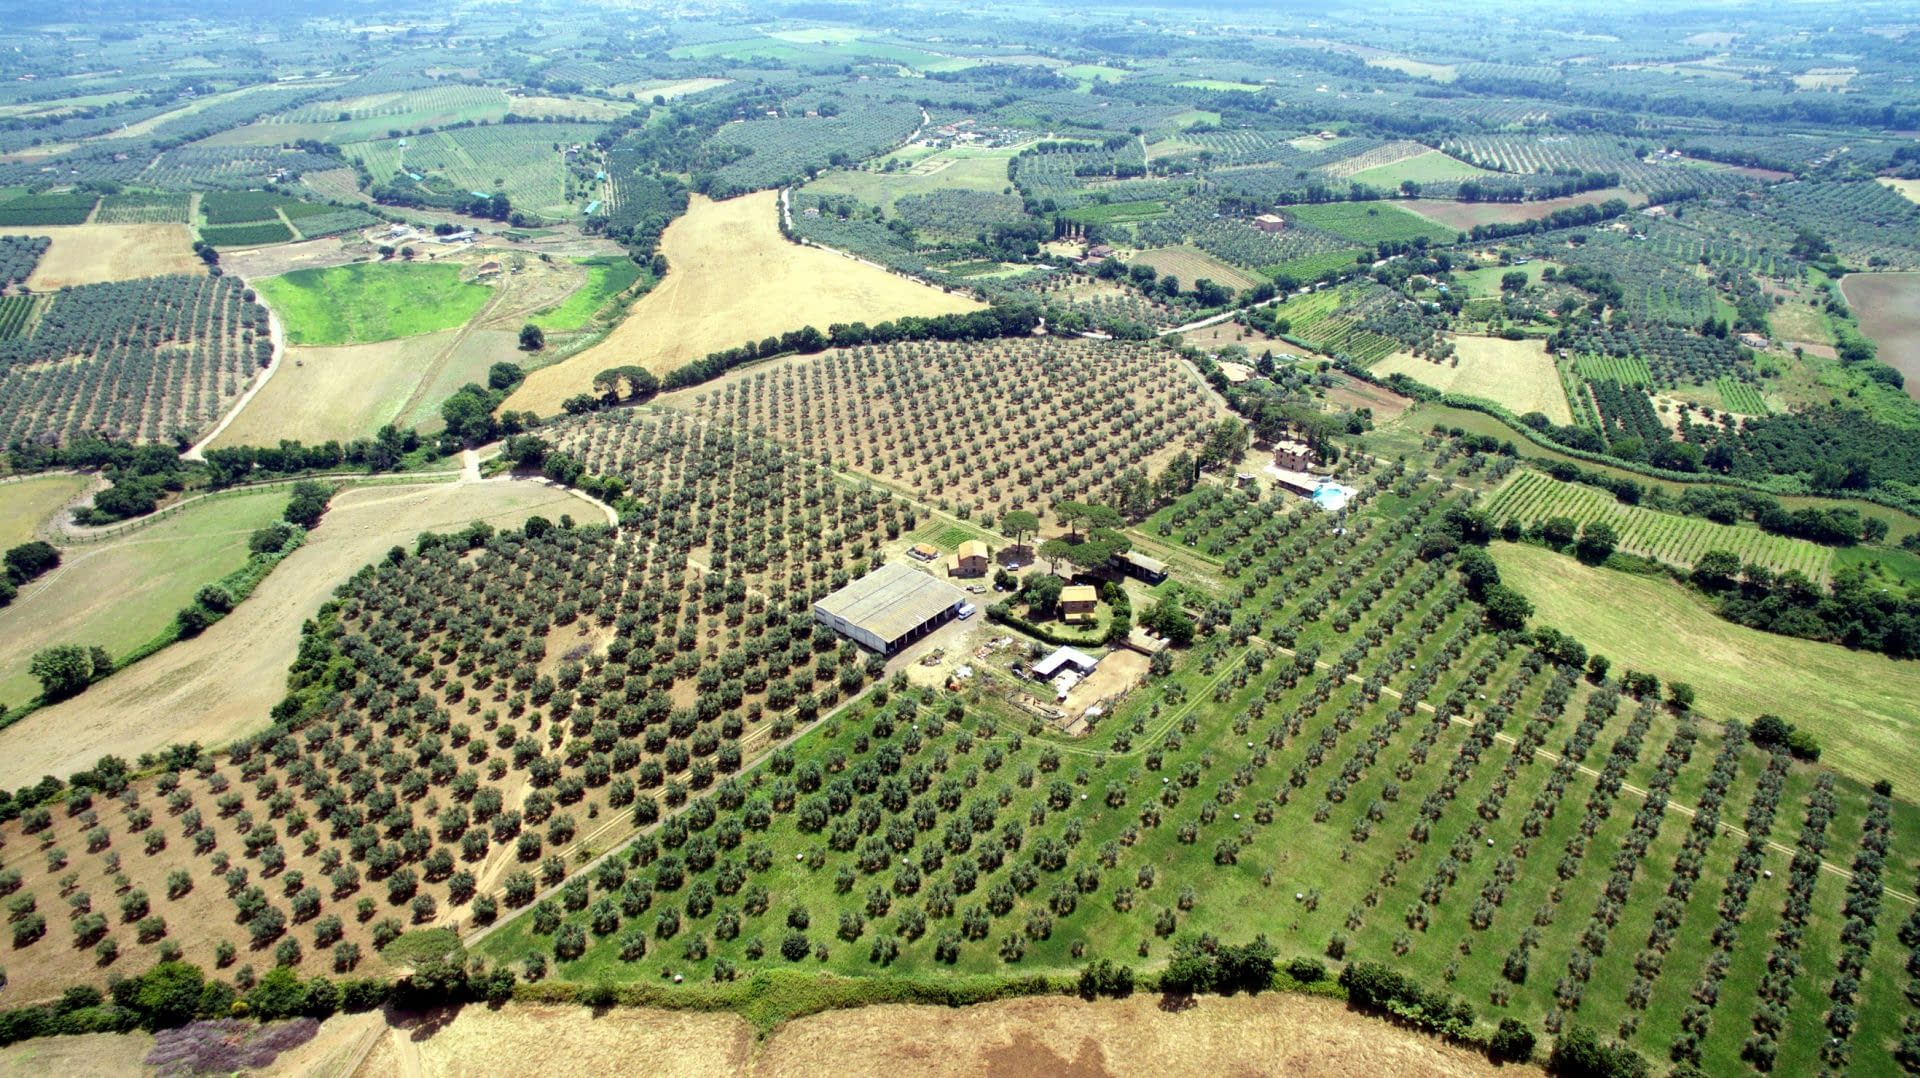 profiles-production-the-best-olive-oils-sustainable-tourism-and-highquality-production-at-traldi-farm-olive-oil-times